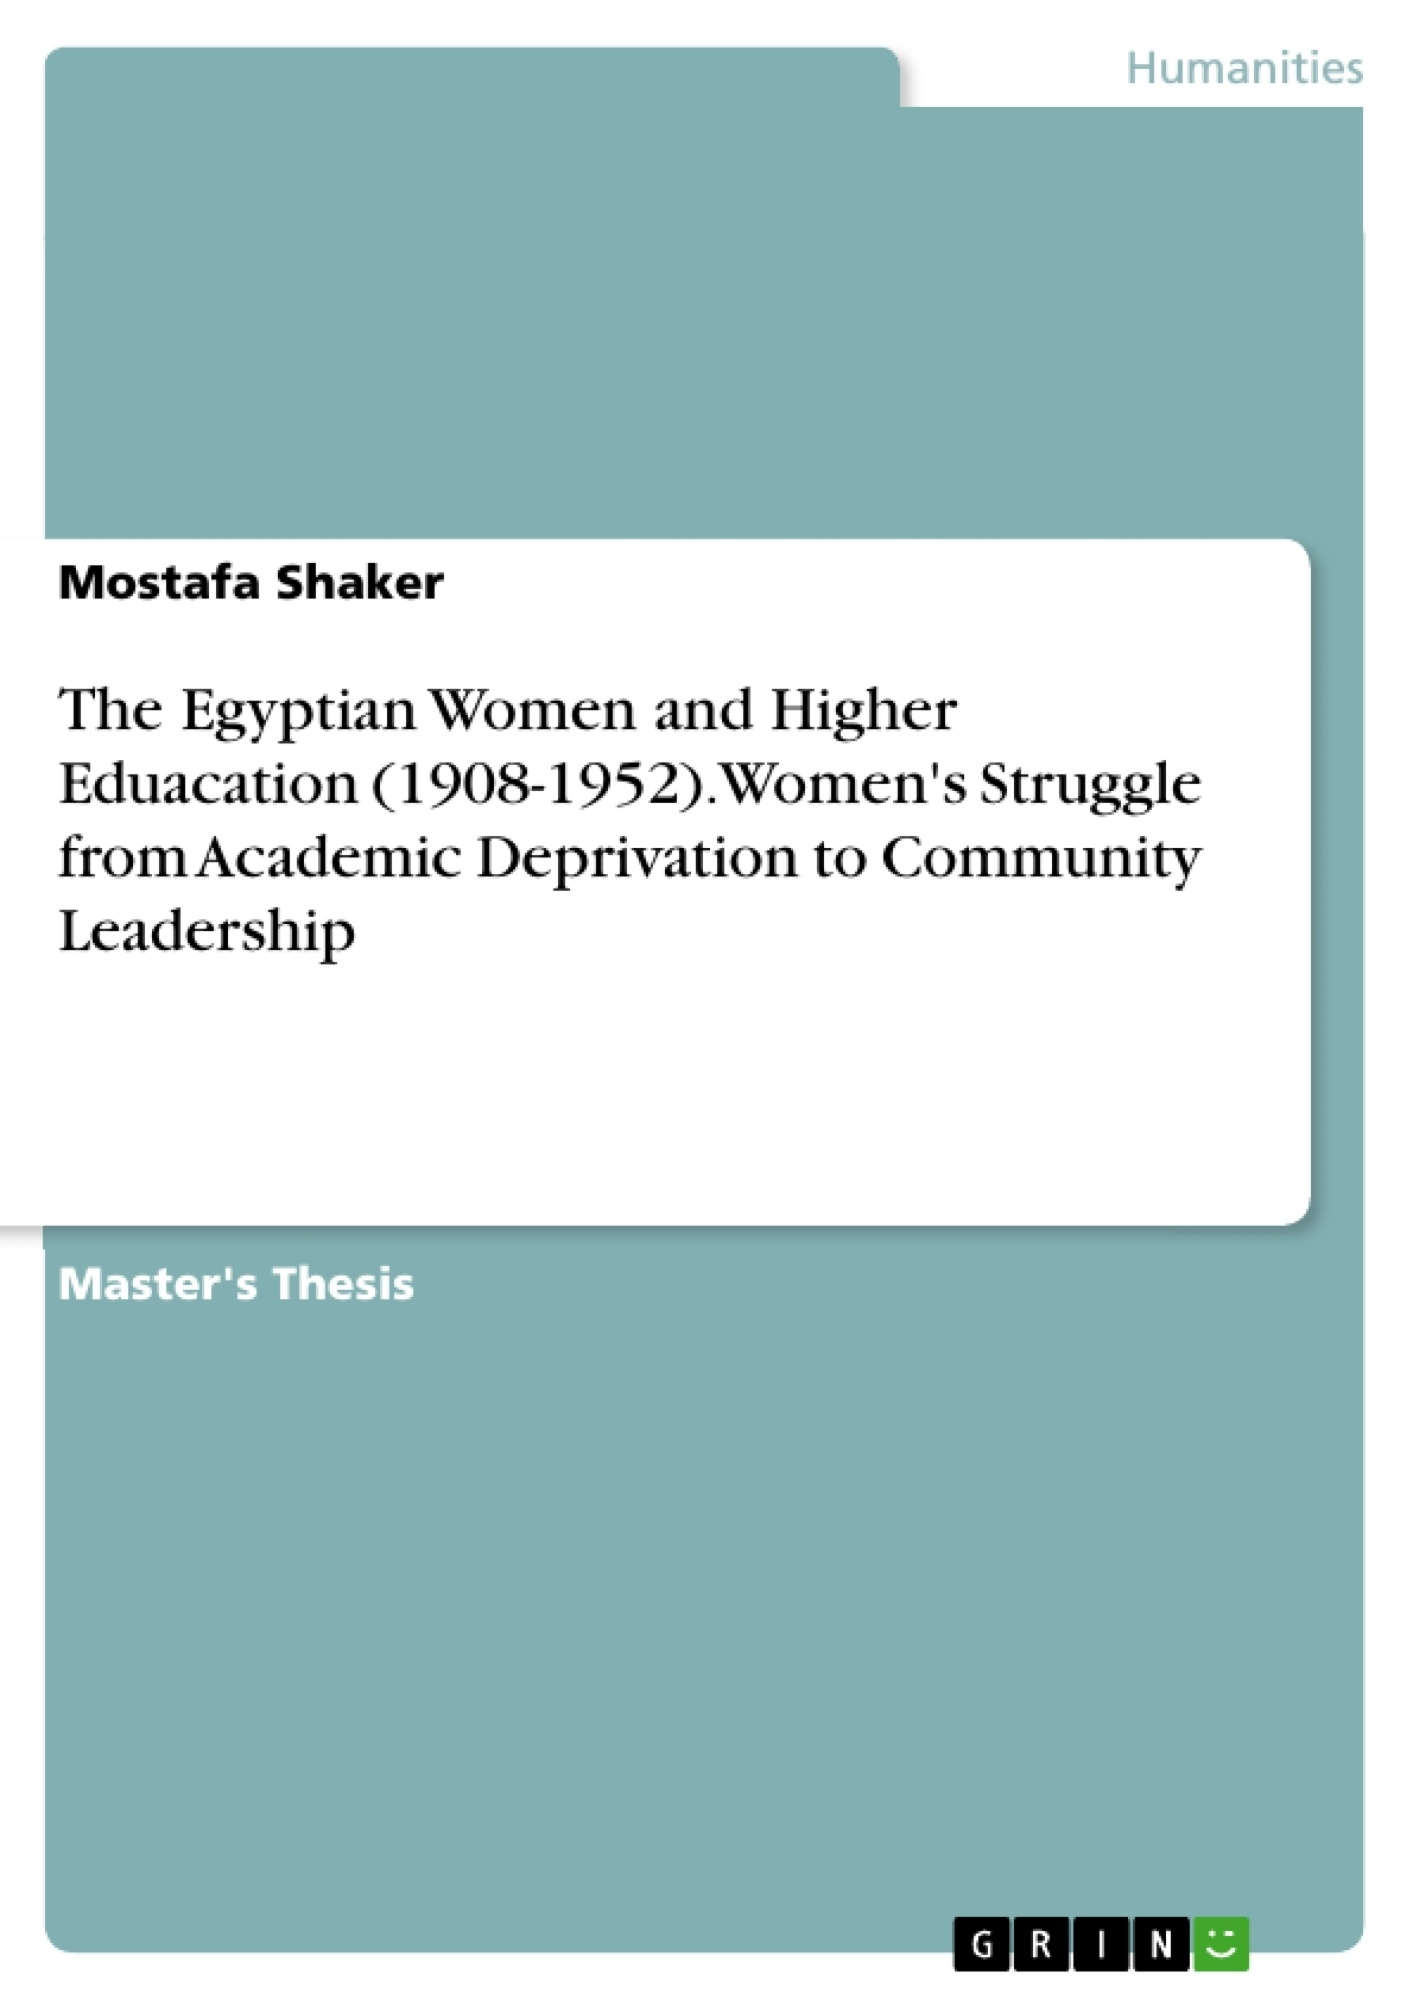 Title: The Egyptian Women and Higher Eduacation (1908-1952). Women's Struggle from Academic Deprivation to Community Leadership